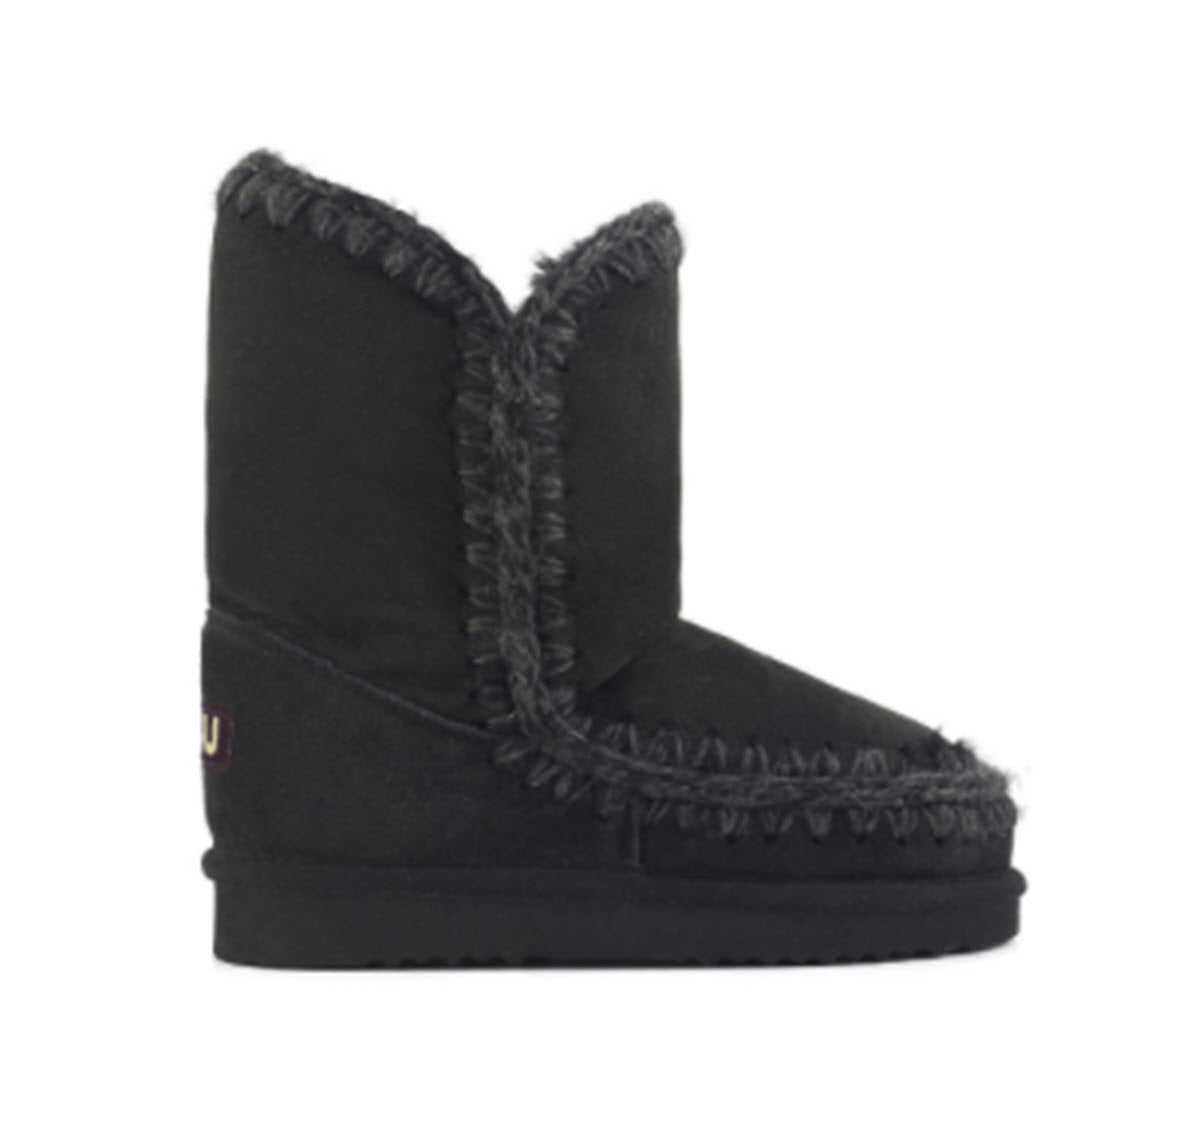 Eskimo - Mou's Iconic Hidden Wedge Bootie in Black